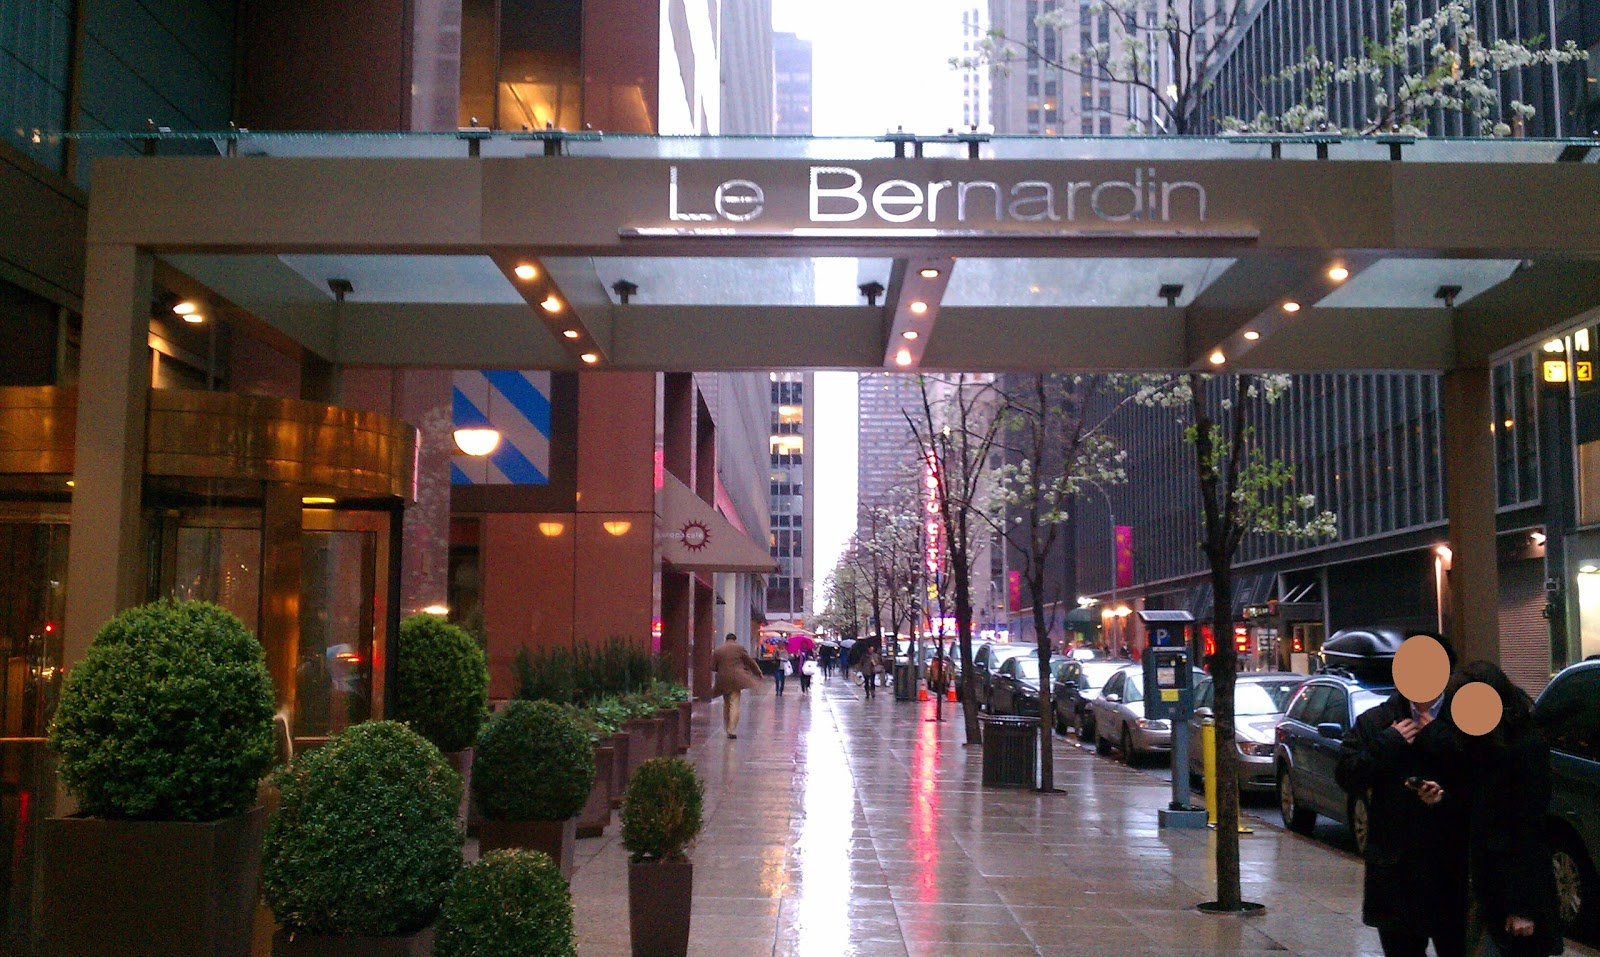 Le Bernardin Restaurant New York Ny